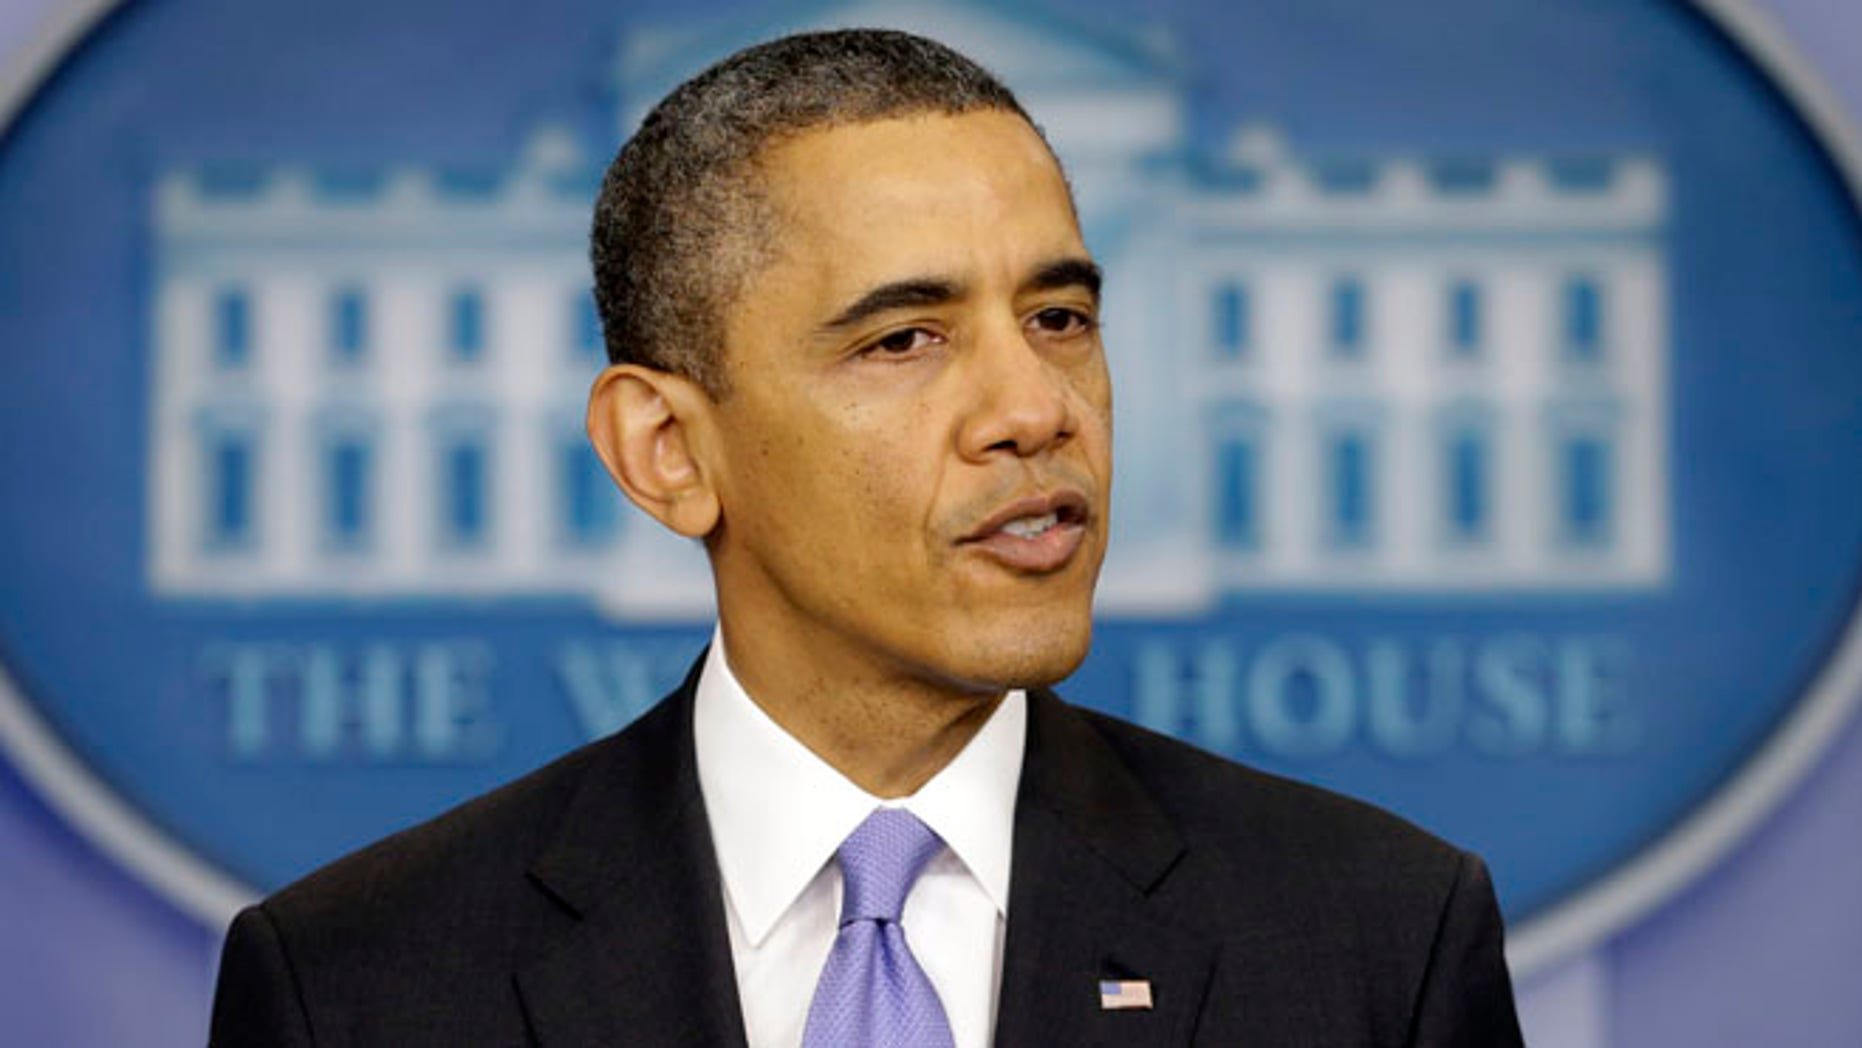 Dec. 20, 2013: President Obama speaks during an end-of-year news conference at the White House.